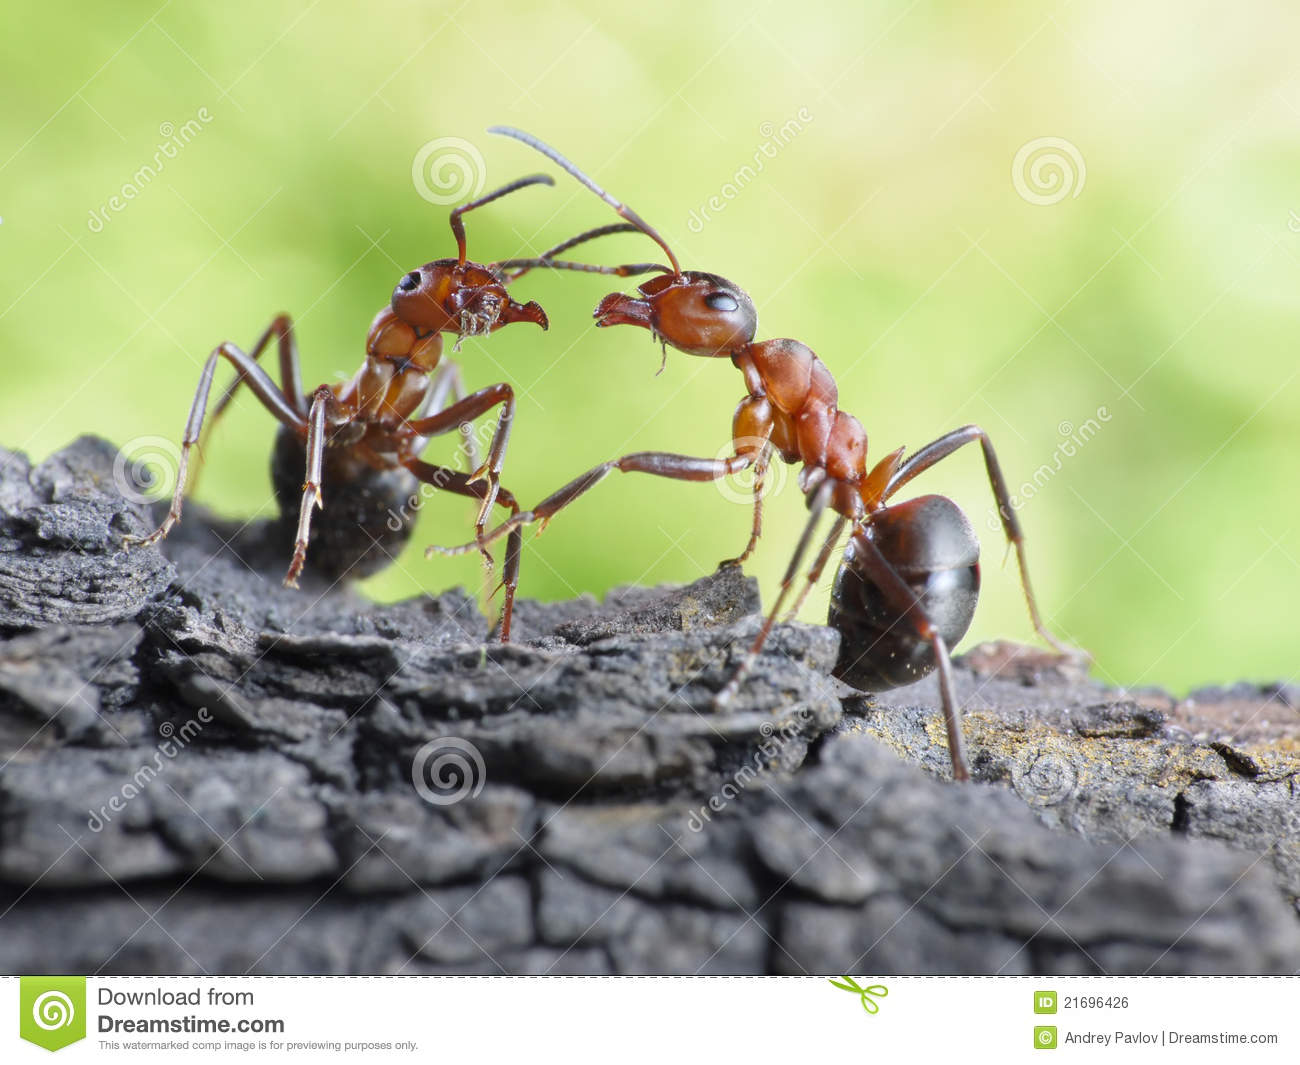 Communication of ants, dialog, links